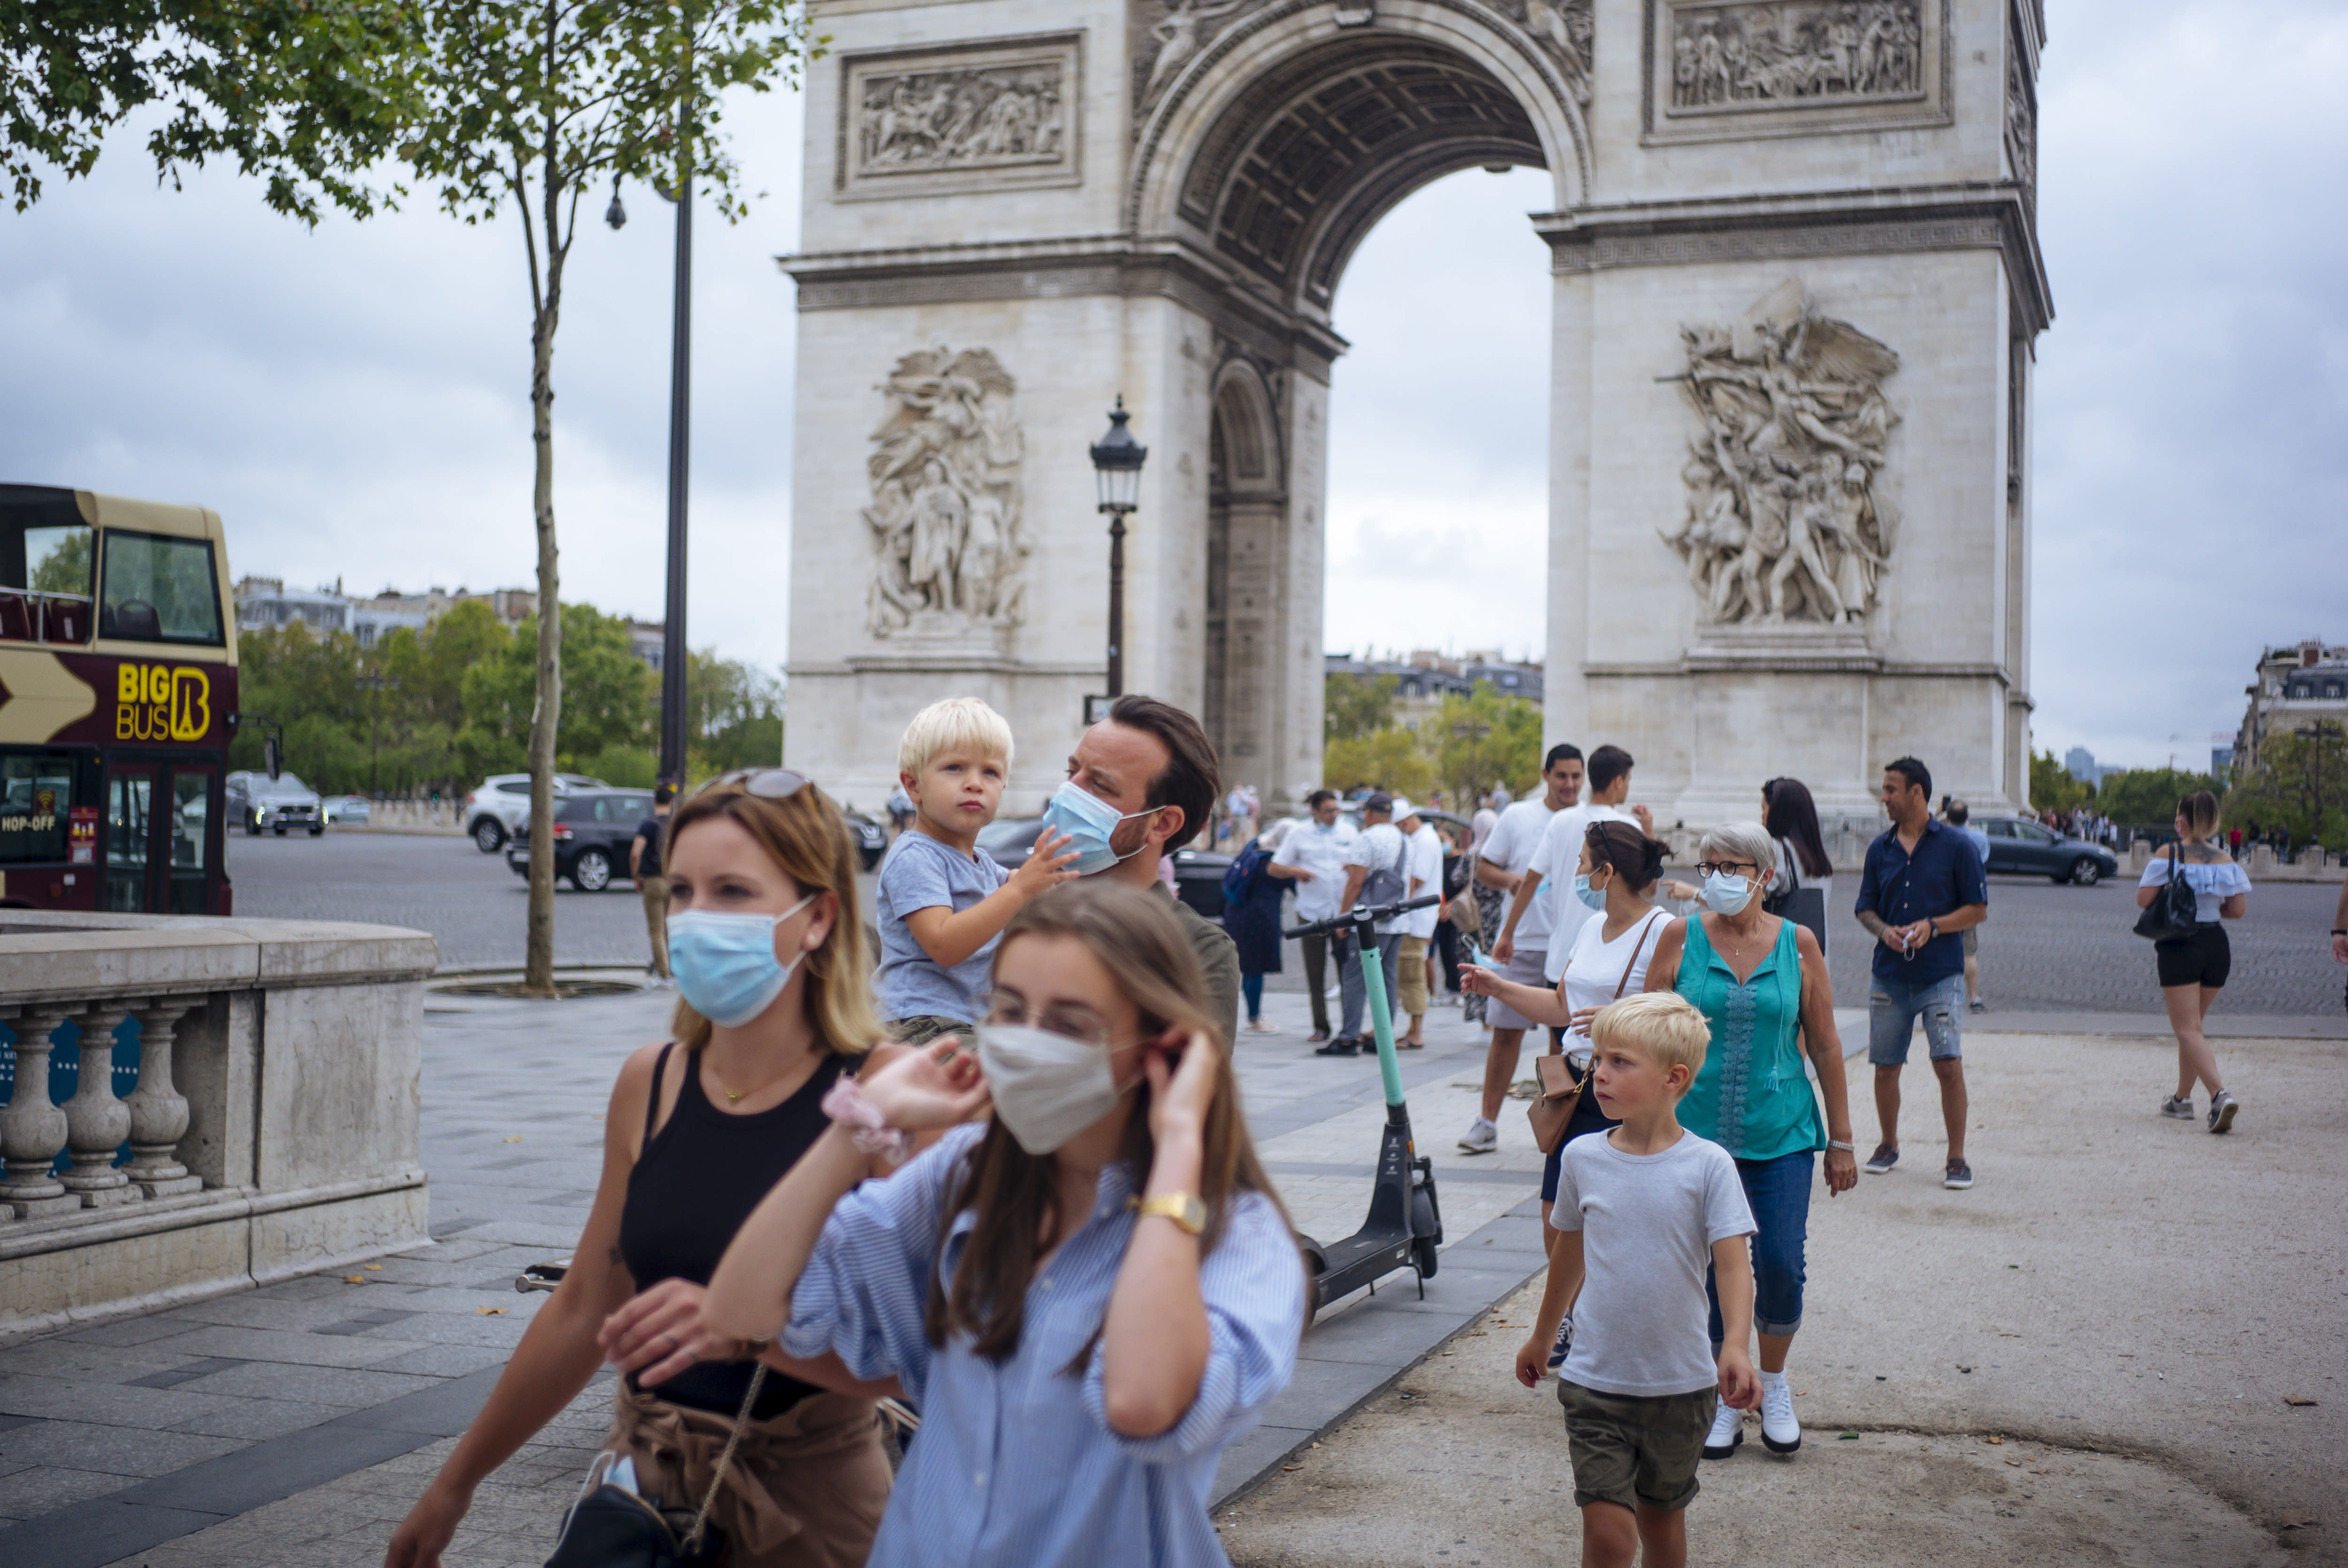 """A family wearing protective face masks walk along on the Champs Elysee avenue, with Arc de Triomphe in background, in Paris, Saturday, Aug. 15, 2020. Paris extended the areas of the city where pedestrians will be obliged to wear masks starting Saturday morning after health officials said that the coronavirus is """"active"""". The Champs-Elysees Avenue and the neighbourhood around the Louvre Museum are among zones where masks will be obligatory. (AP Photo/Kamil Zihnioglu)"""